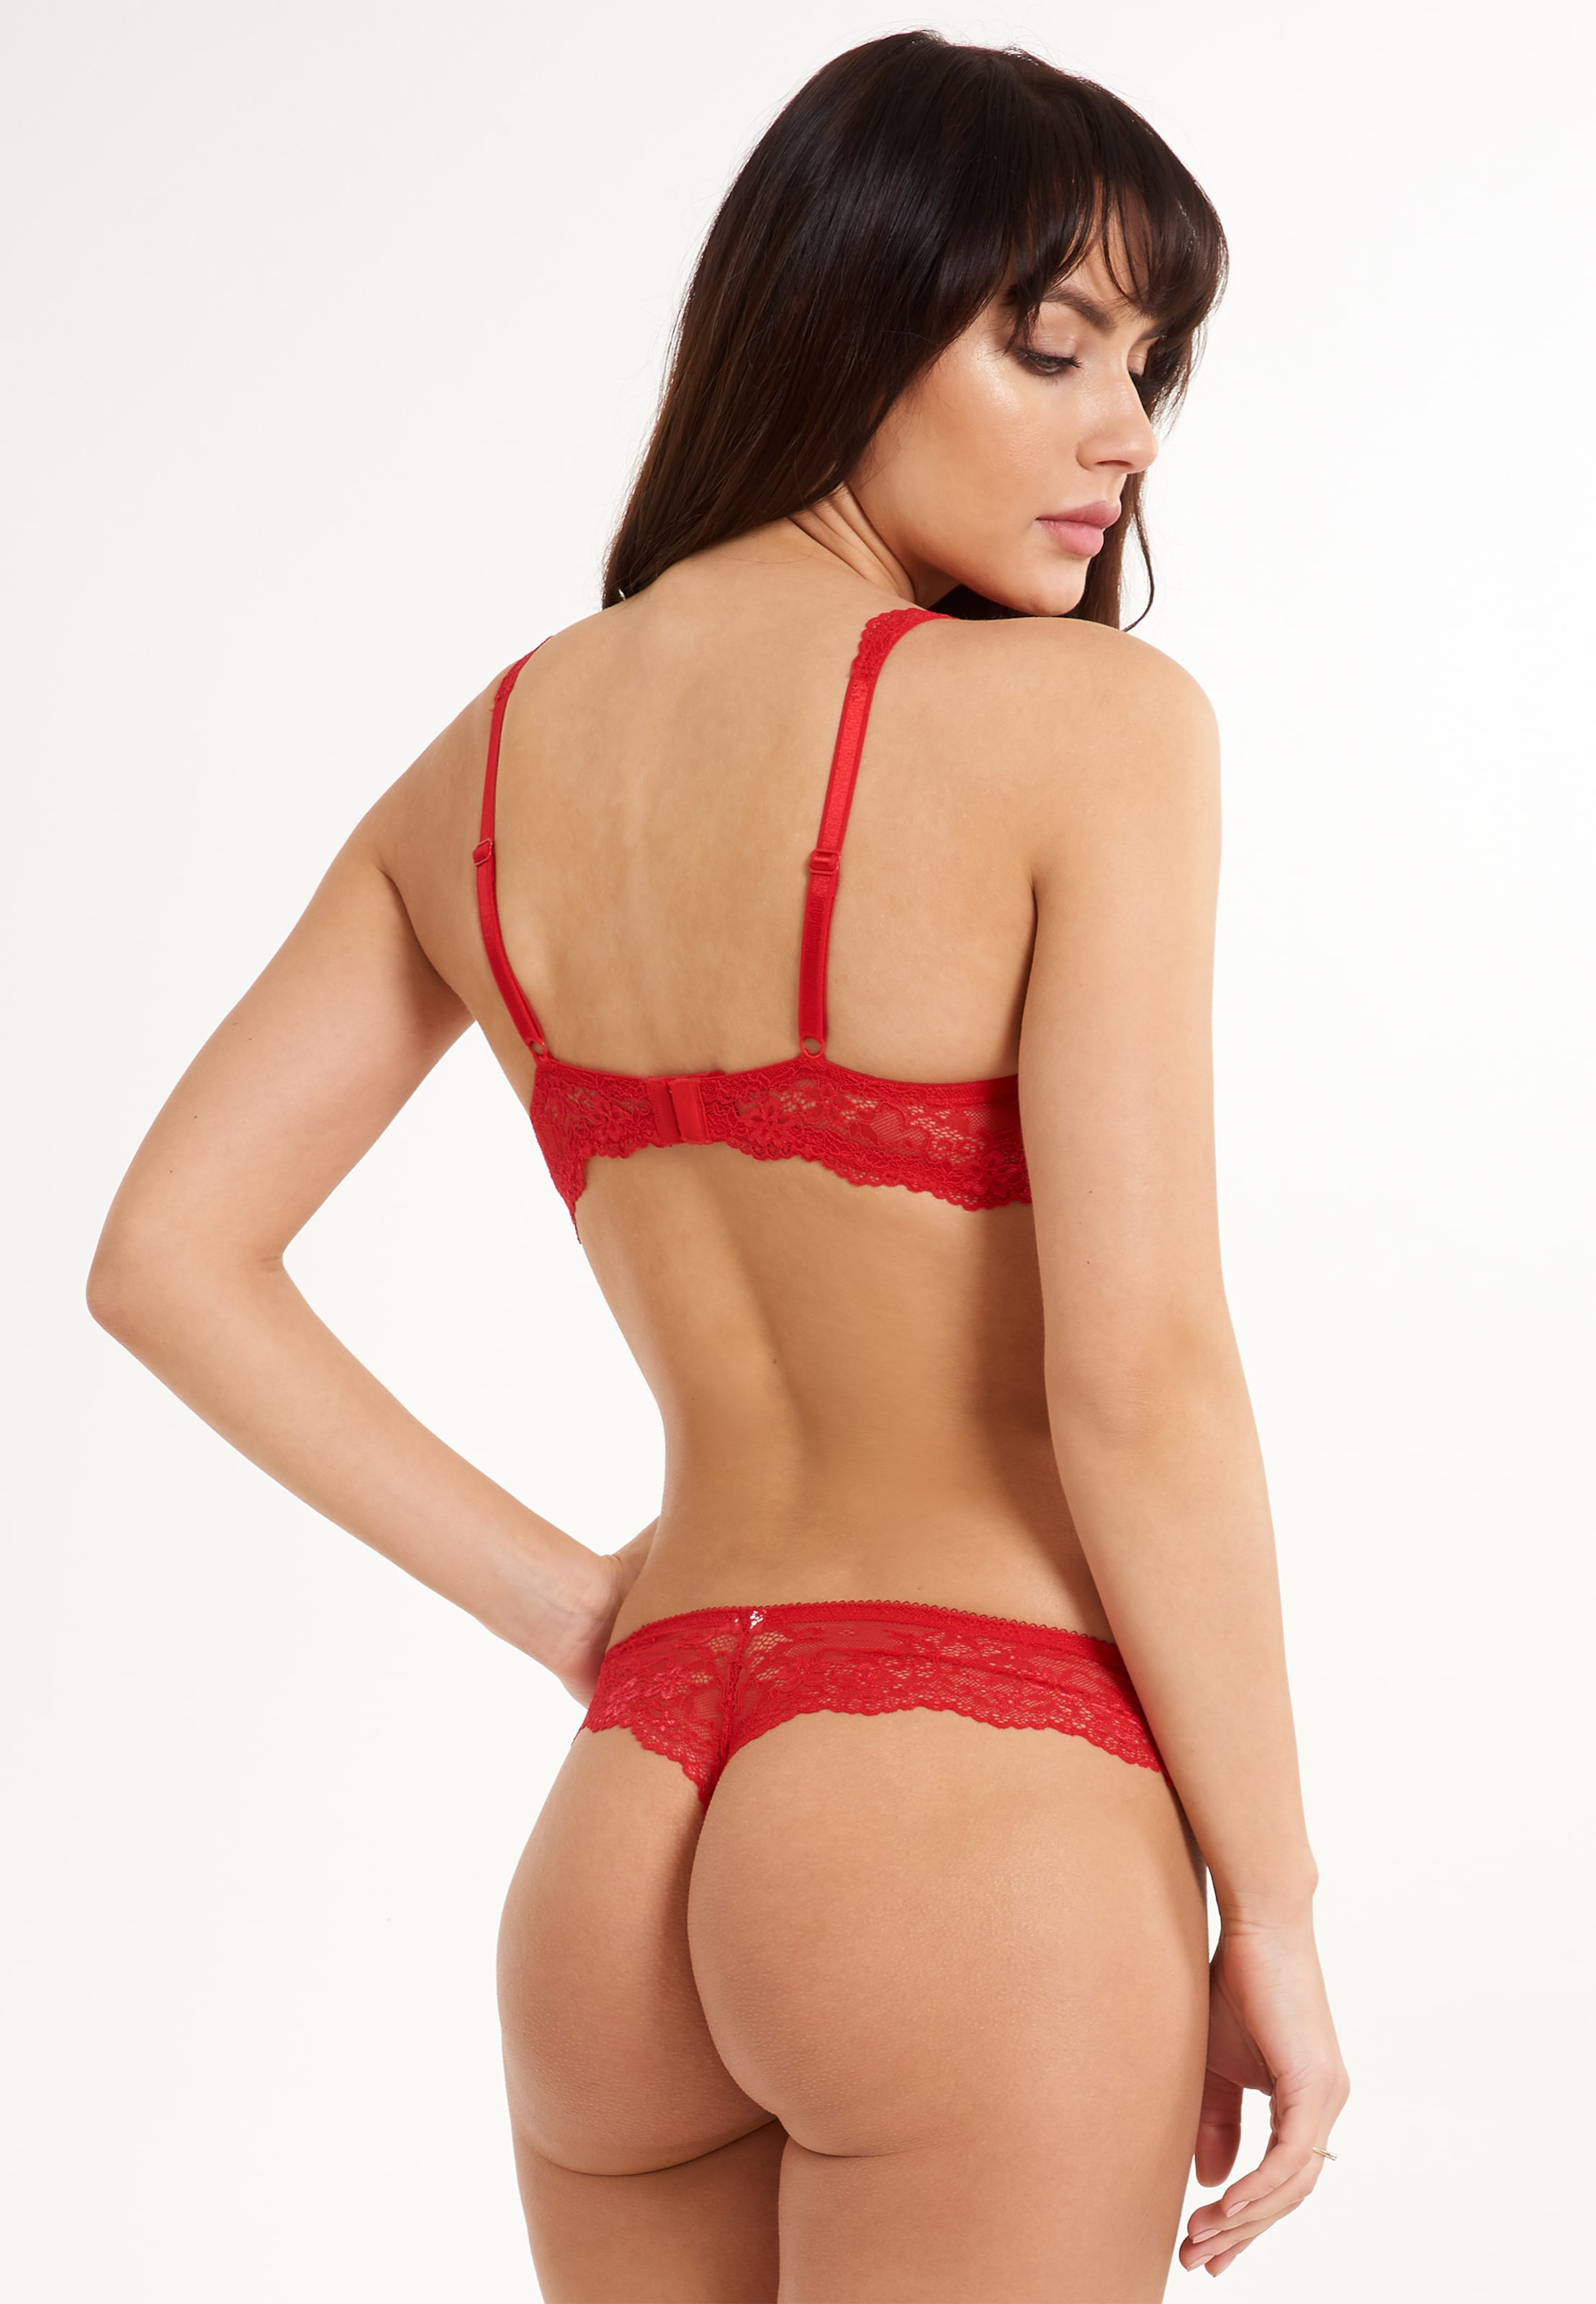 Lace' Lingadore En Rouge String 'daily bgy7f6